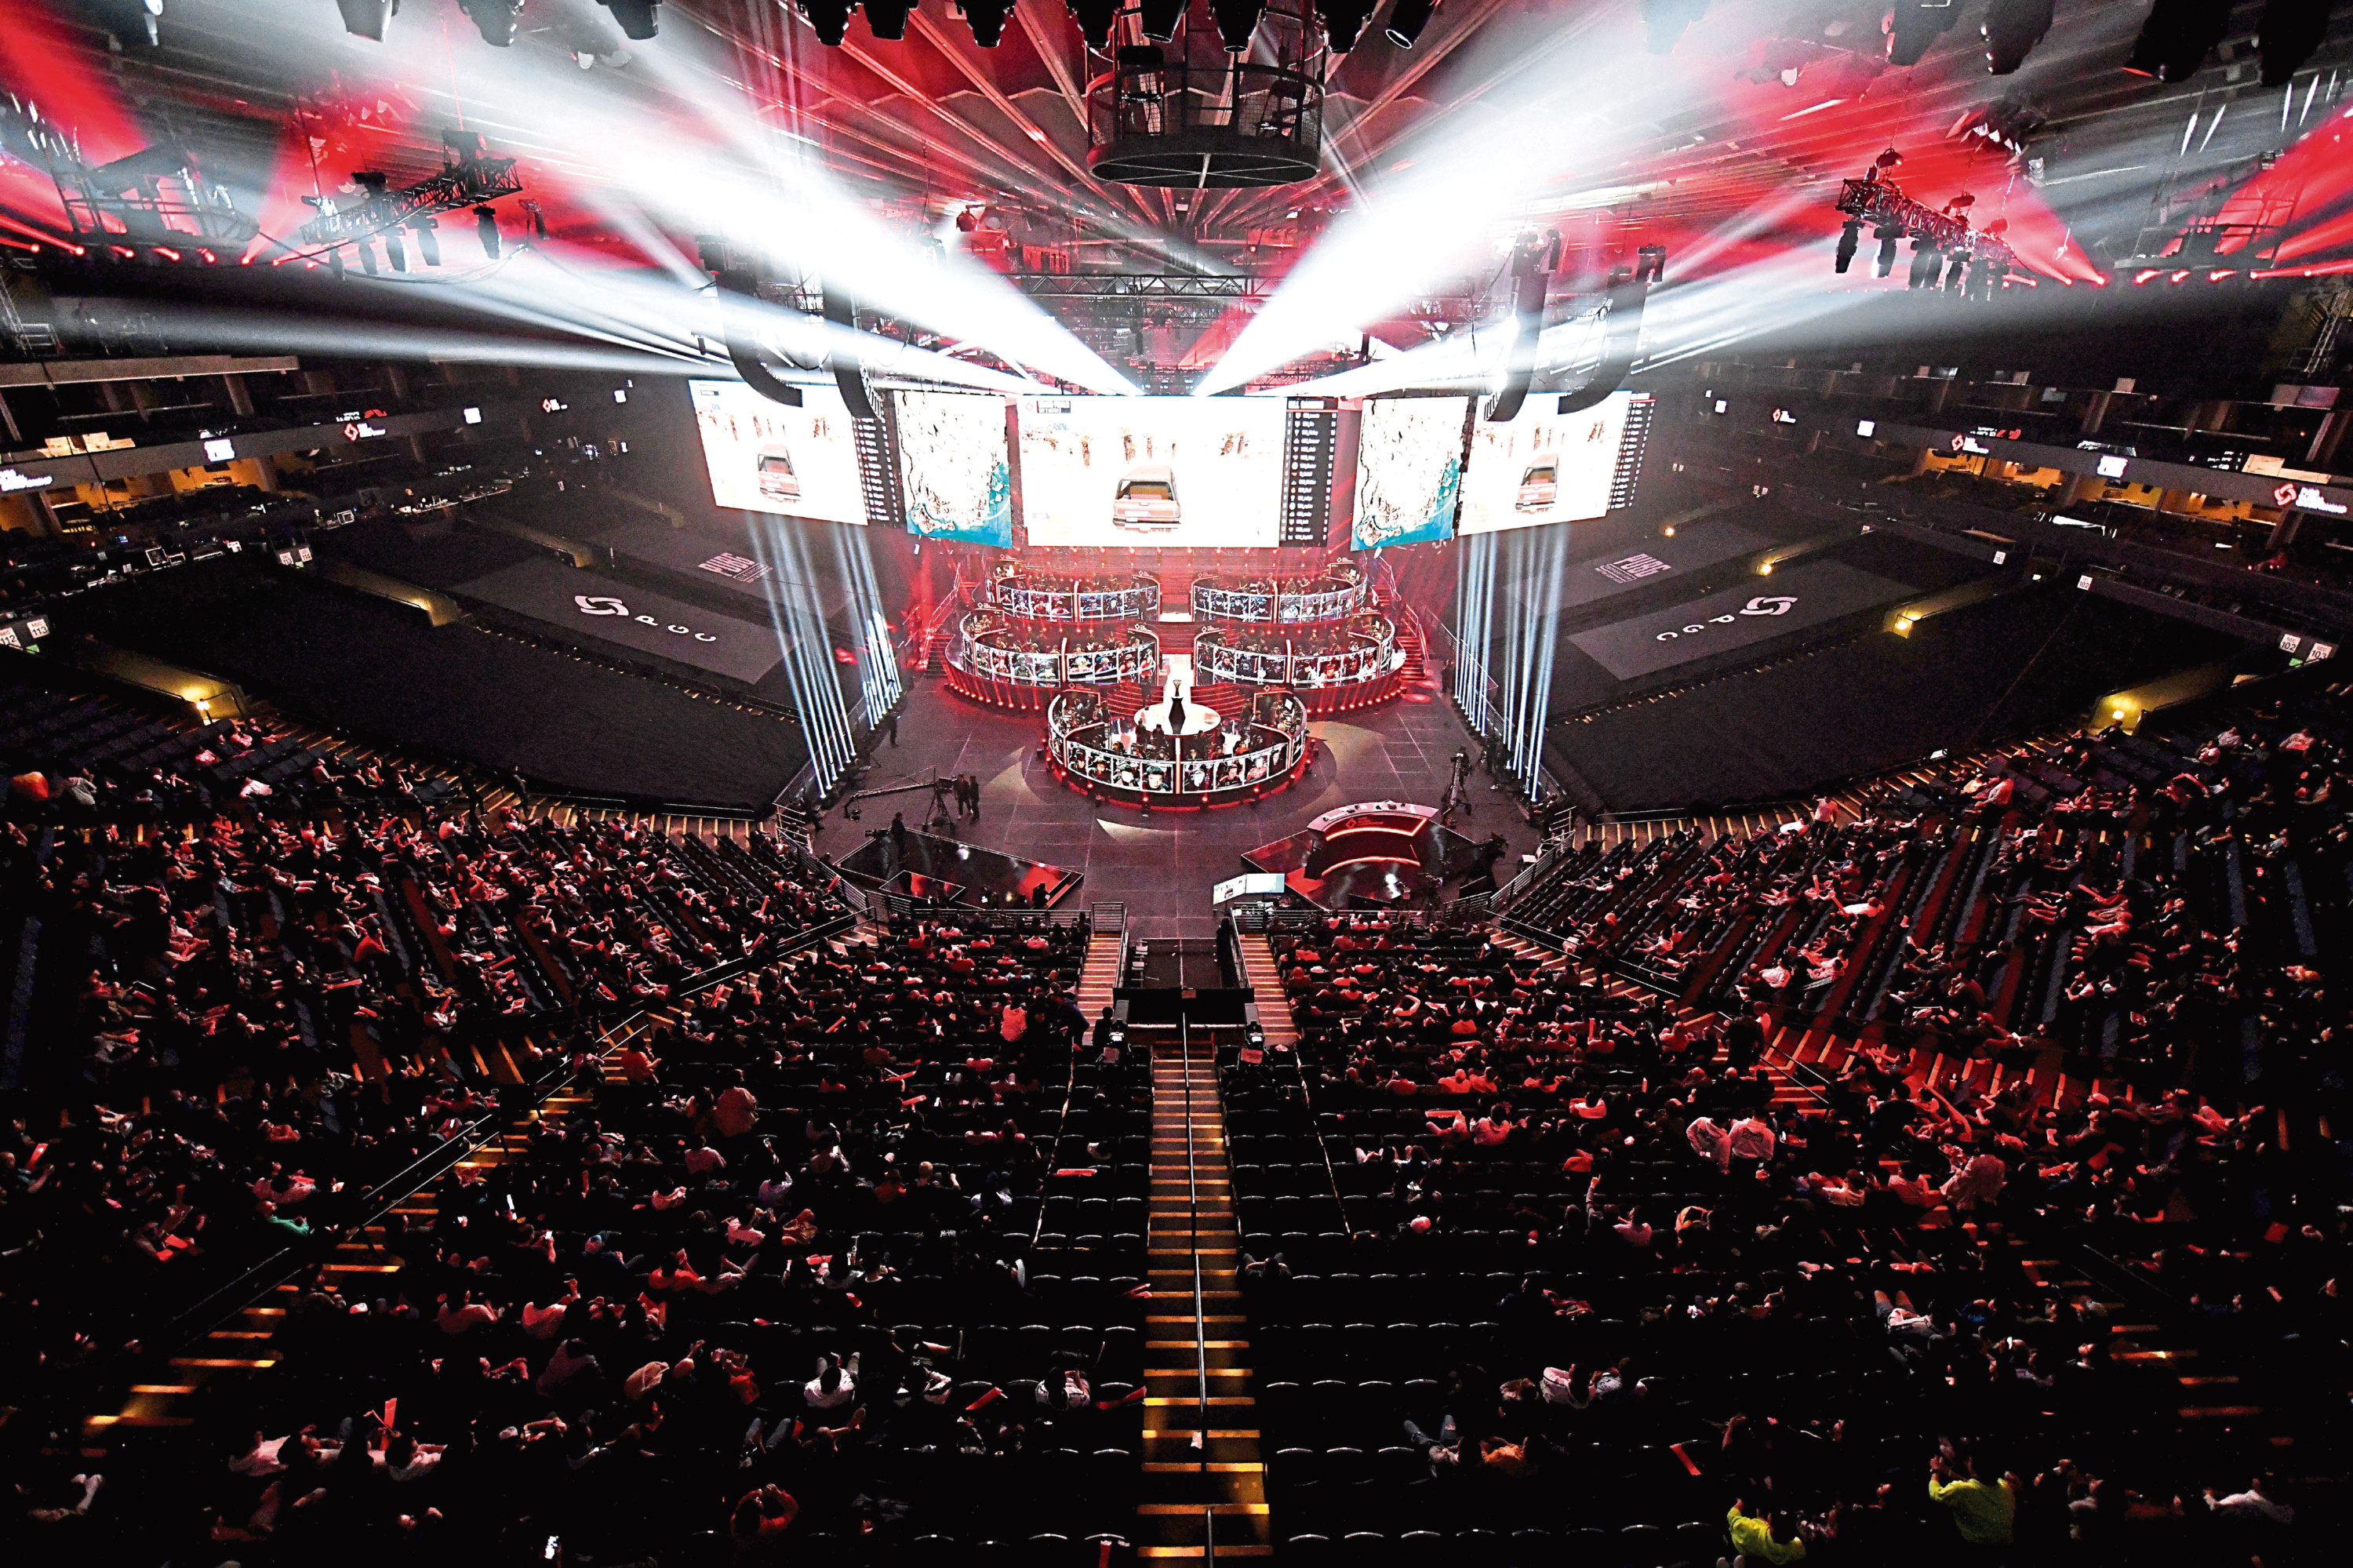 Teams participate in a match during the PUBG Global Championship 2019 Grand Finals at Oakland Arena, California, earlier this month